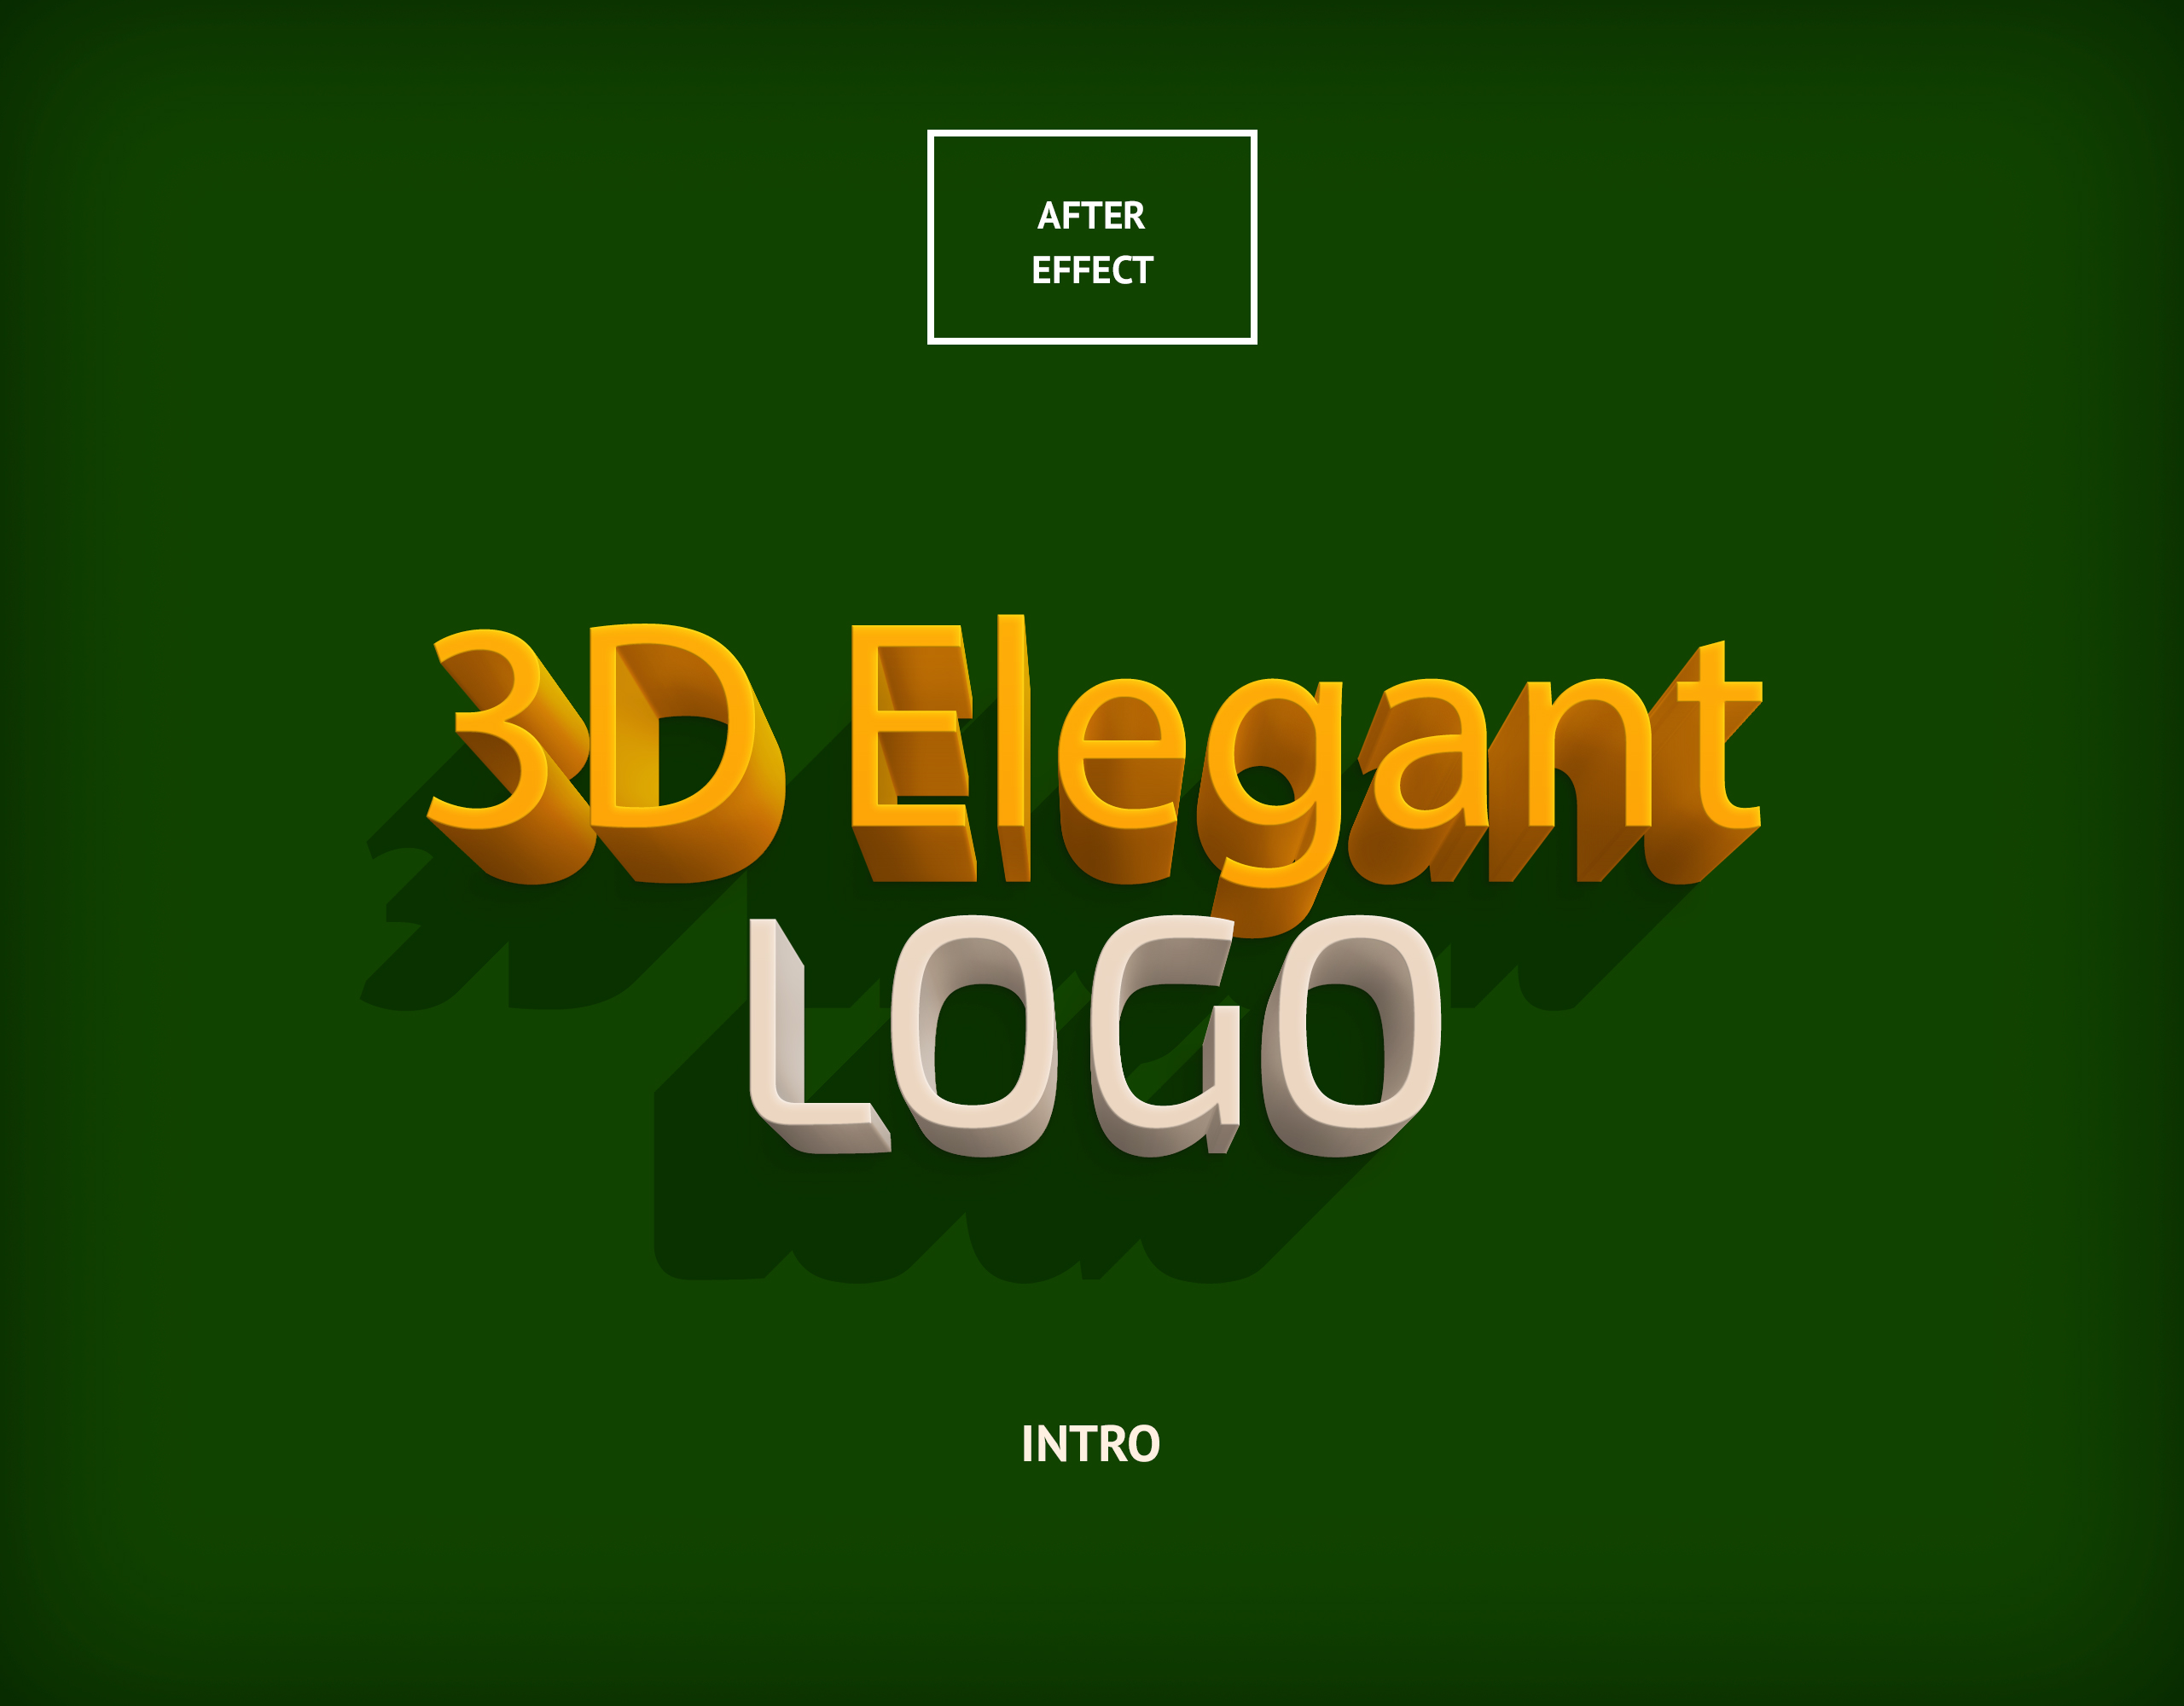 Free After effect template - 3D Elegant Logo